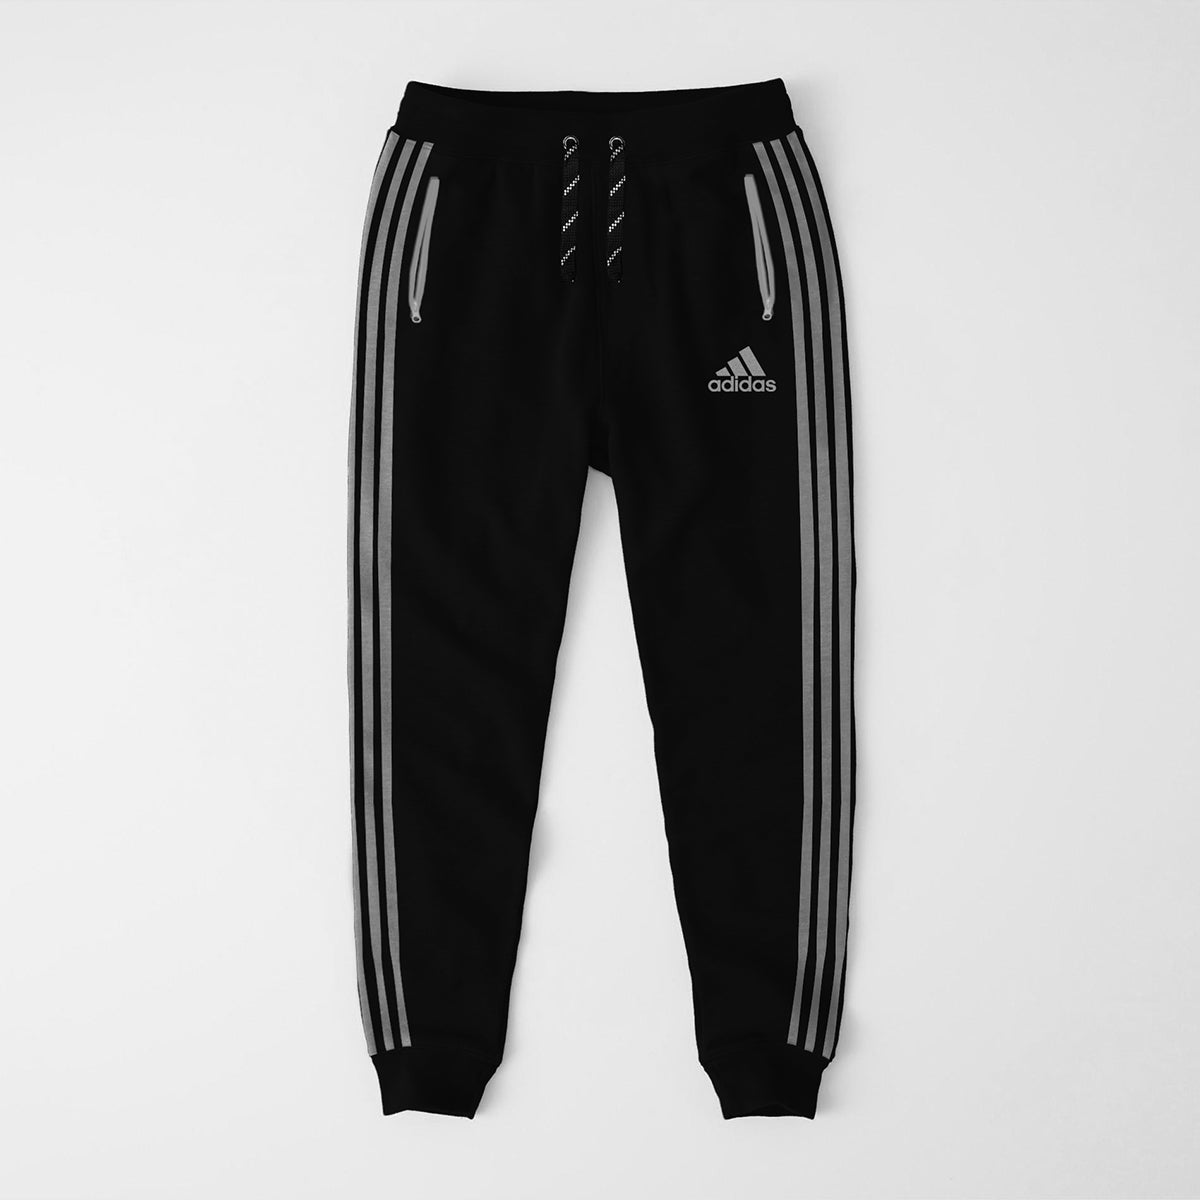 Adidas Single Jersey Slim Fit Jogger Trouser For Men-NA8247